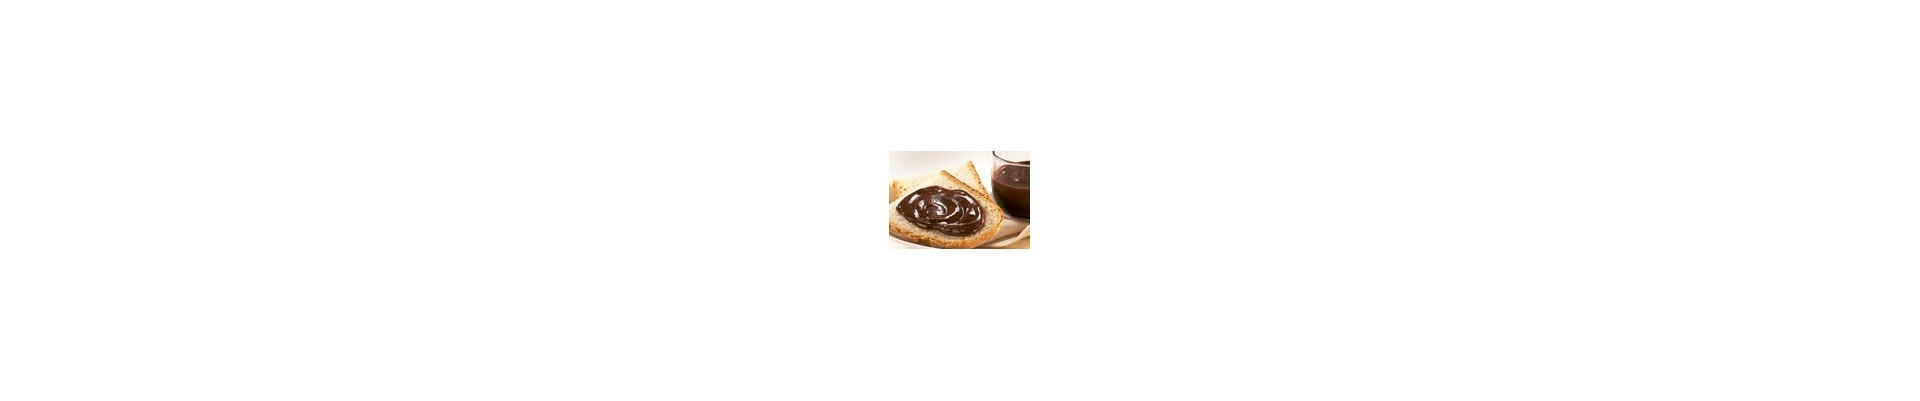 Spreadable cream with Modica chocolate